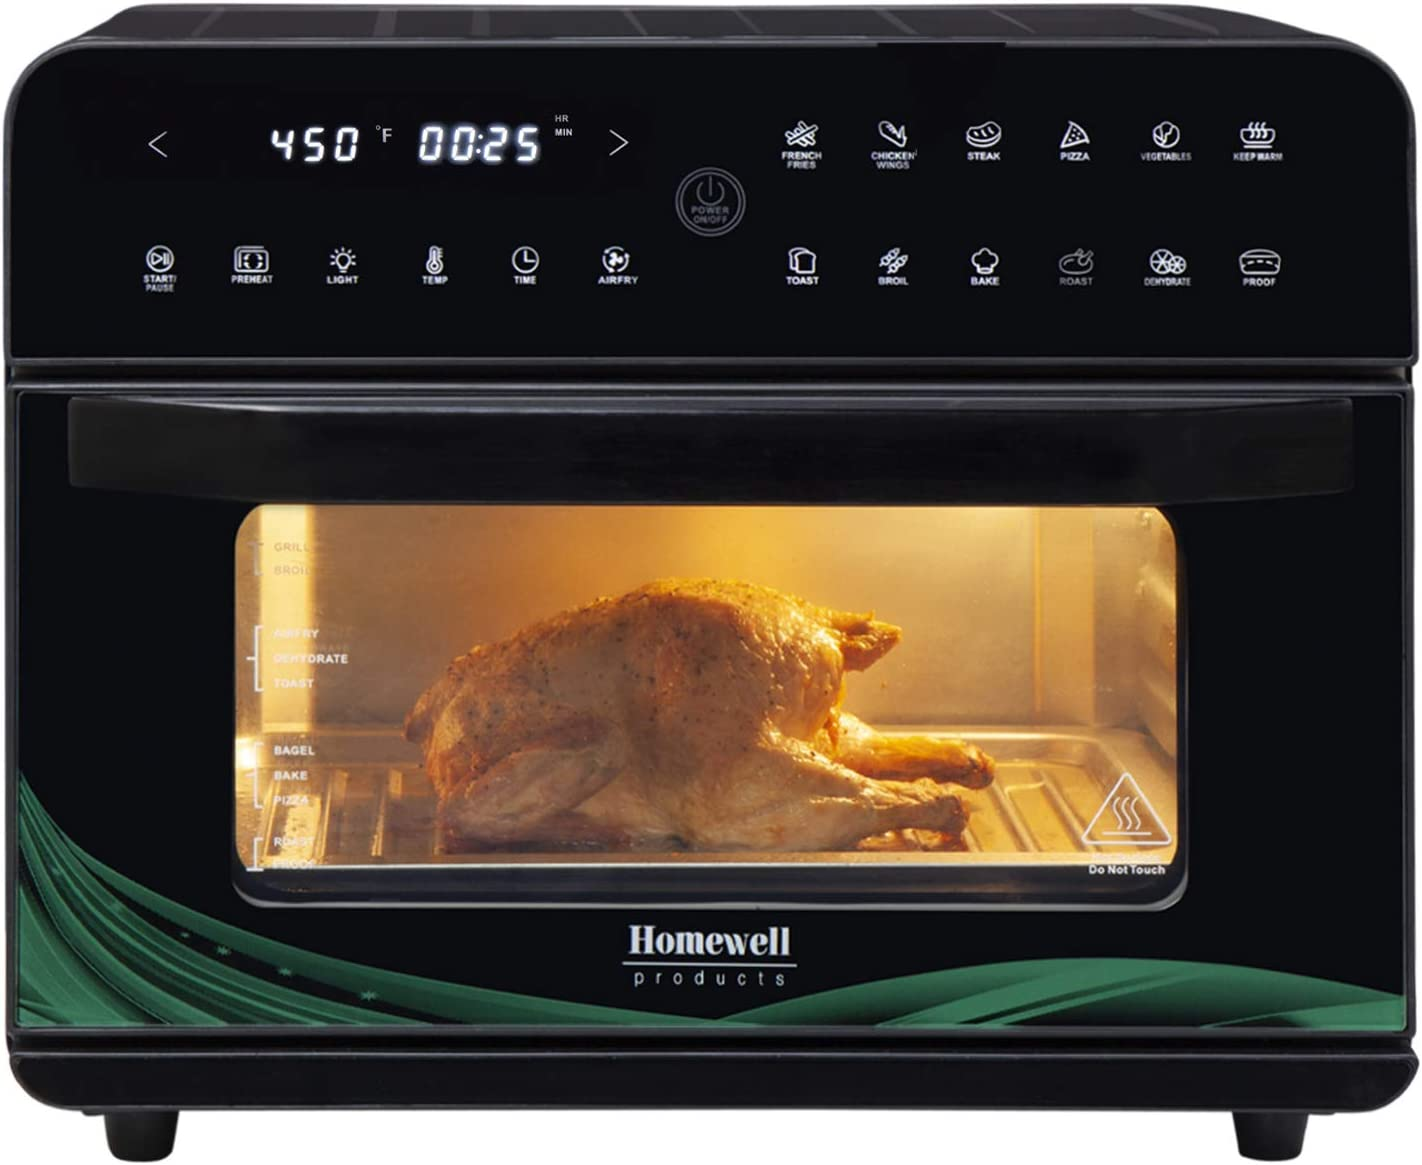 Homewell XL Large Air Fryer Ranking TOP10 Oven Some reservation Capacity 1800W Ho Electric 26QT